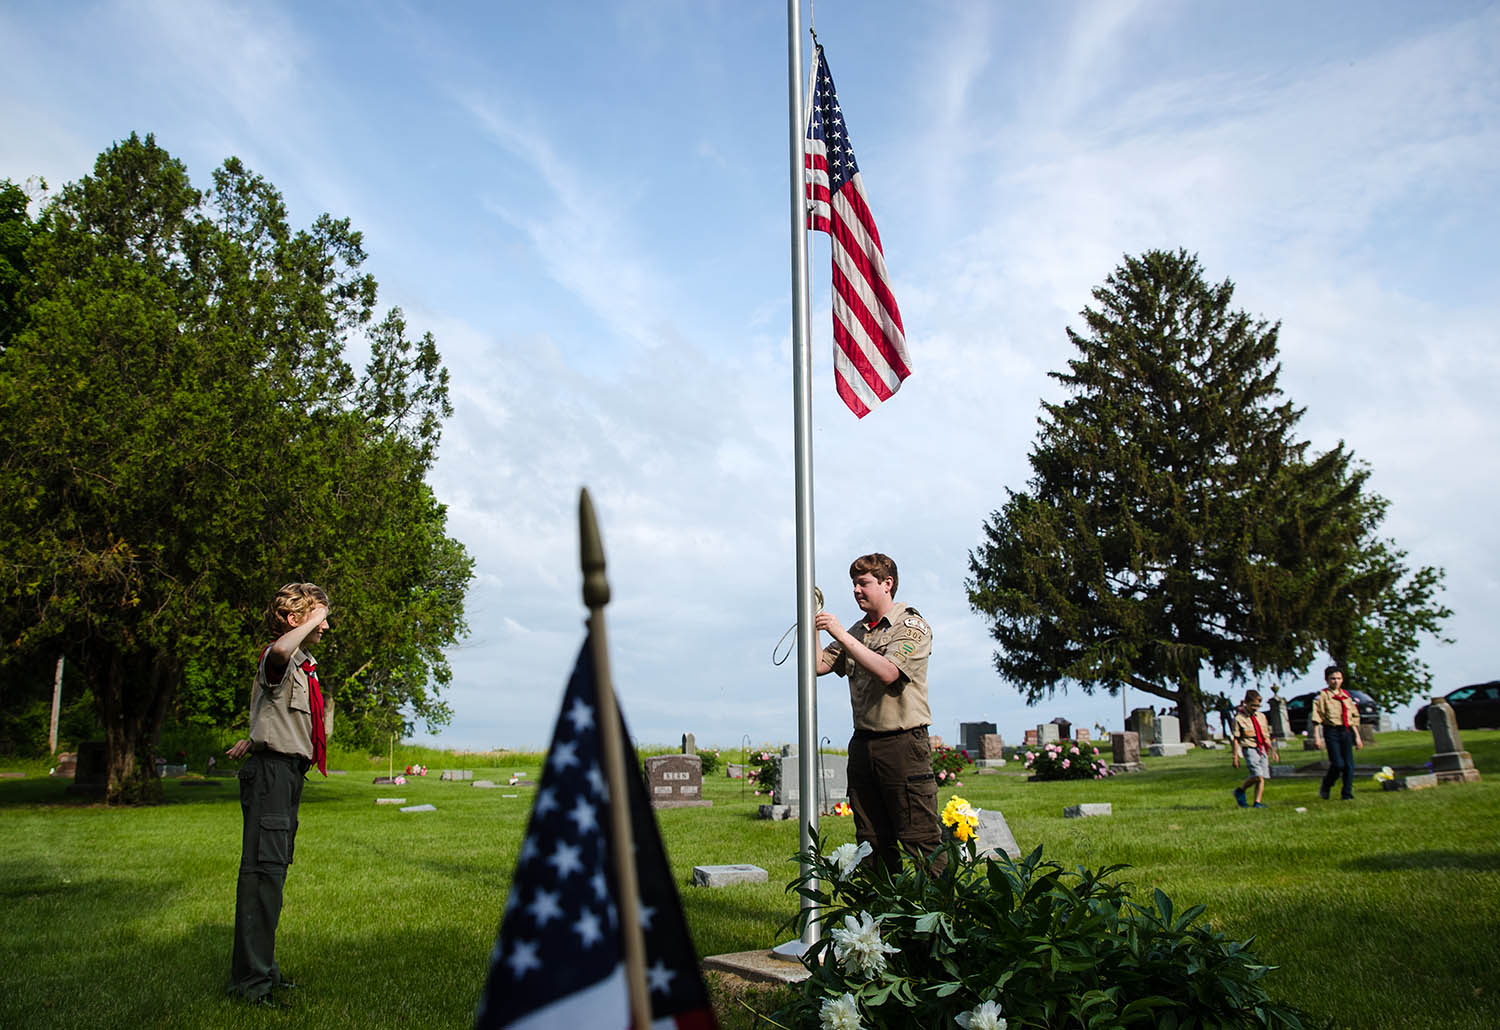 Boy Scout Troop 305 member Hugh Beeler salutes as Matt Shaw lowers the flag before a Memorial Day ceremony at Salisbury Cemetery Monday, May 27, 2019. The joint effort with American Legion Post 599 included stops at multiple cemeteries for a 21-gun salute and the playing of Taps. [Ted Schurter/The State Journal-Register]